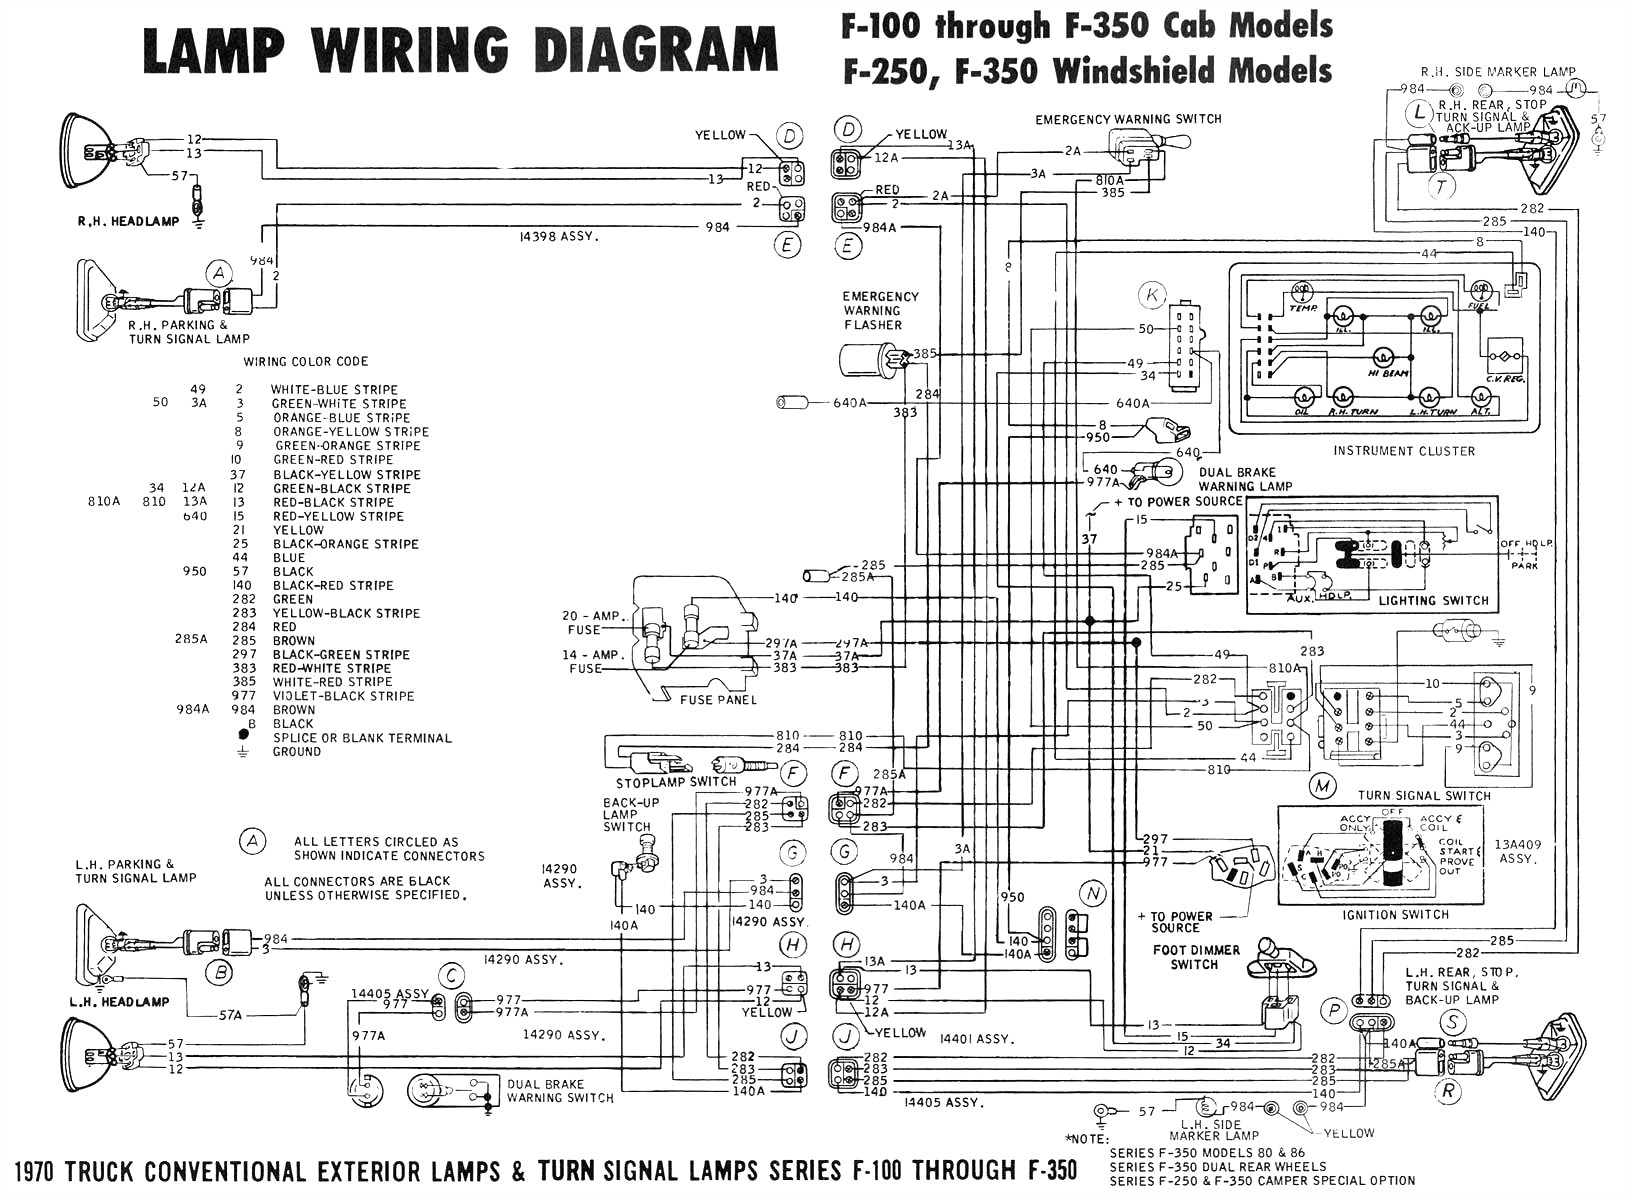 51 ford wiring diagram wiring diagram 51 ford tail light wiring diagram